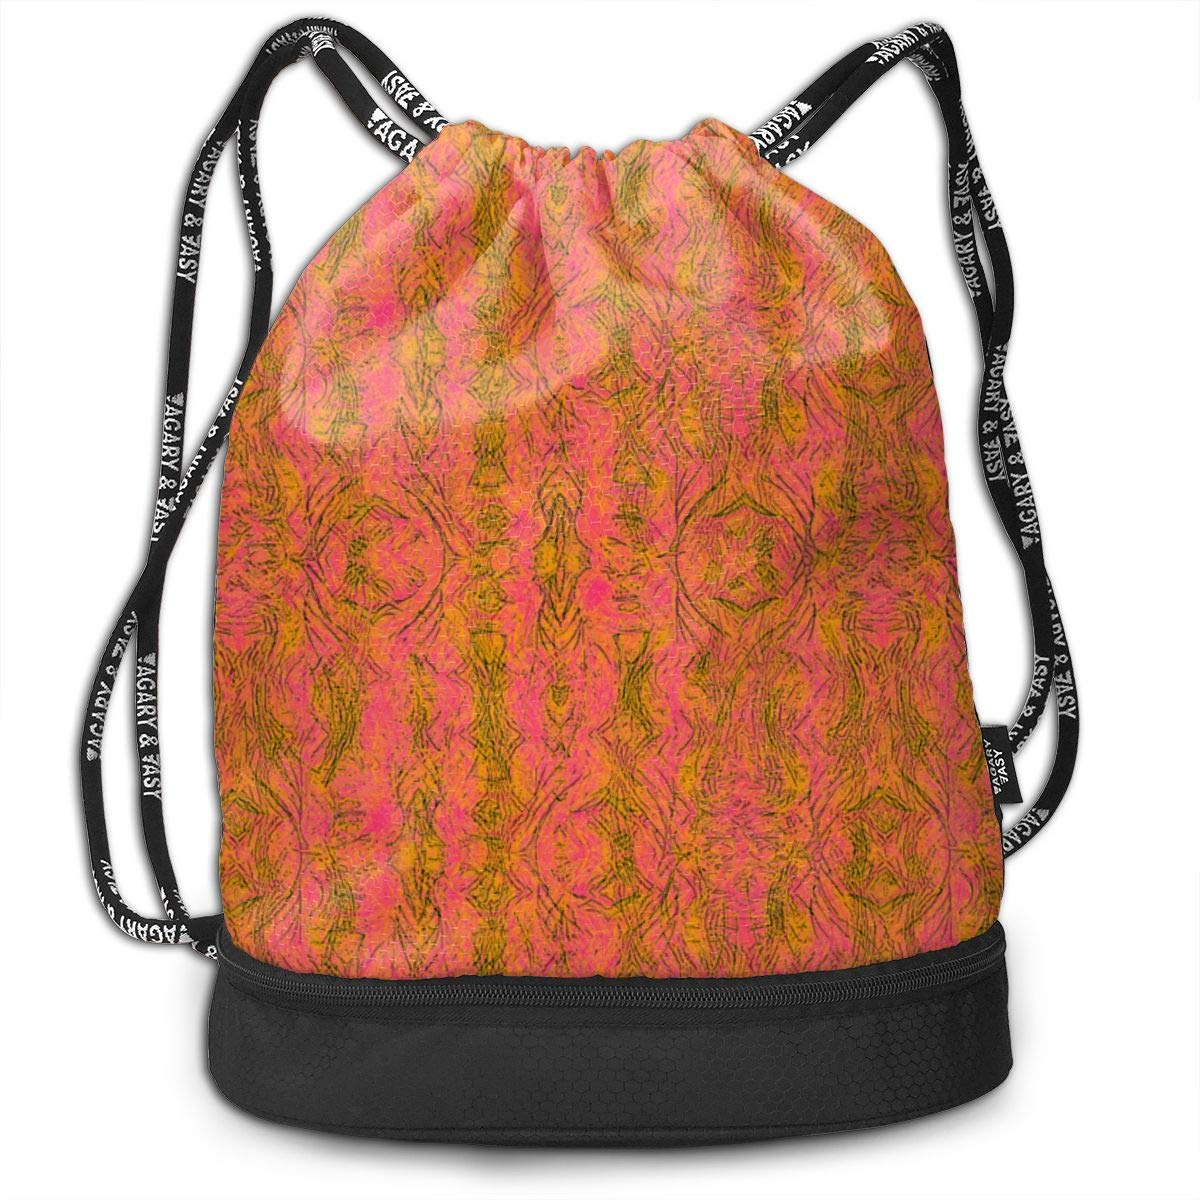 Neon Abstract Drawstring Backpack Sports Athletic Gym Cinch Sack String Storage Bags for Hiking Travel Beach